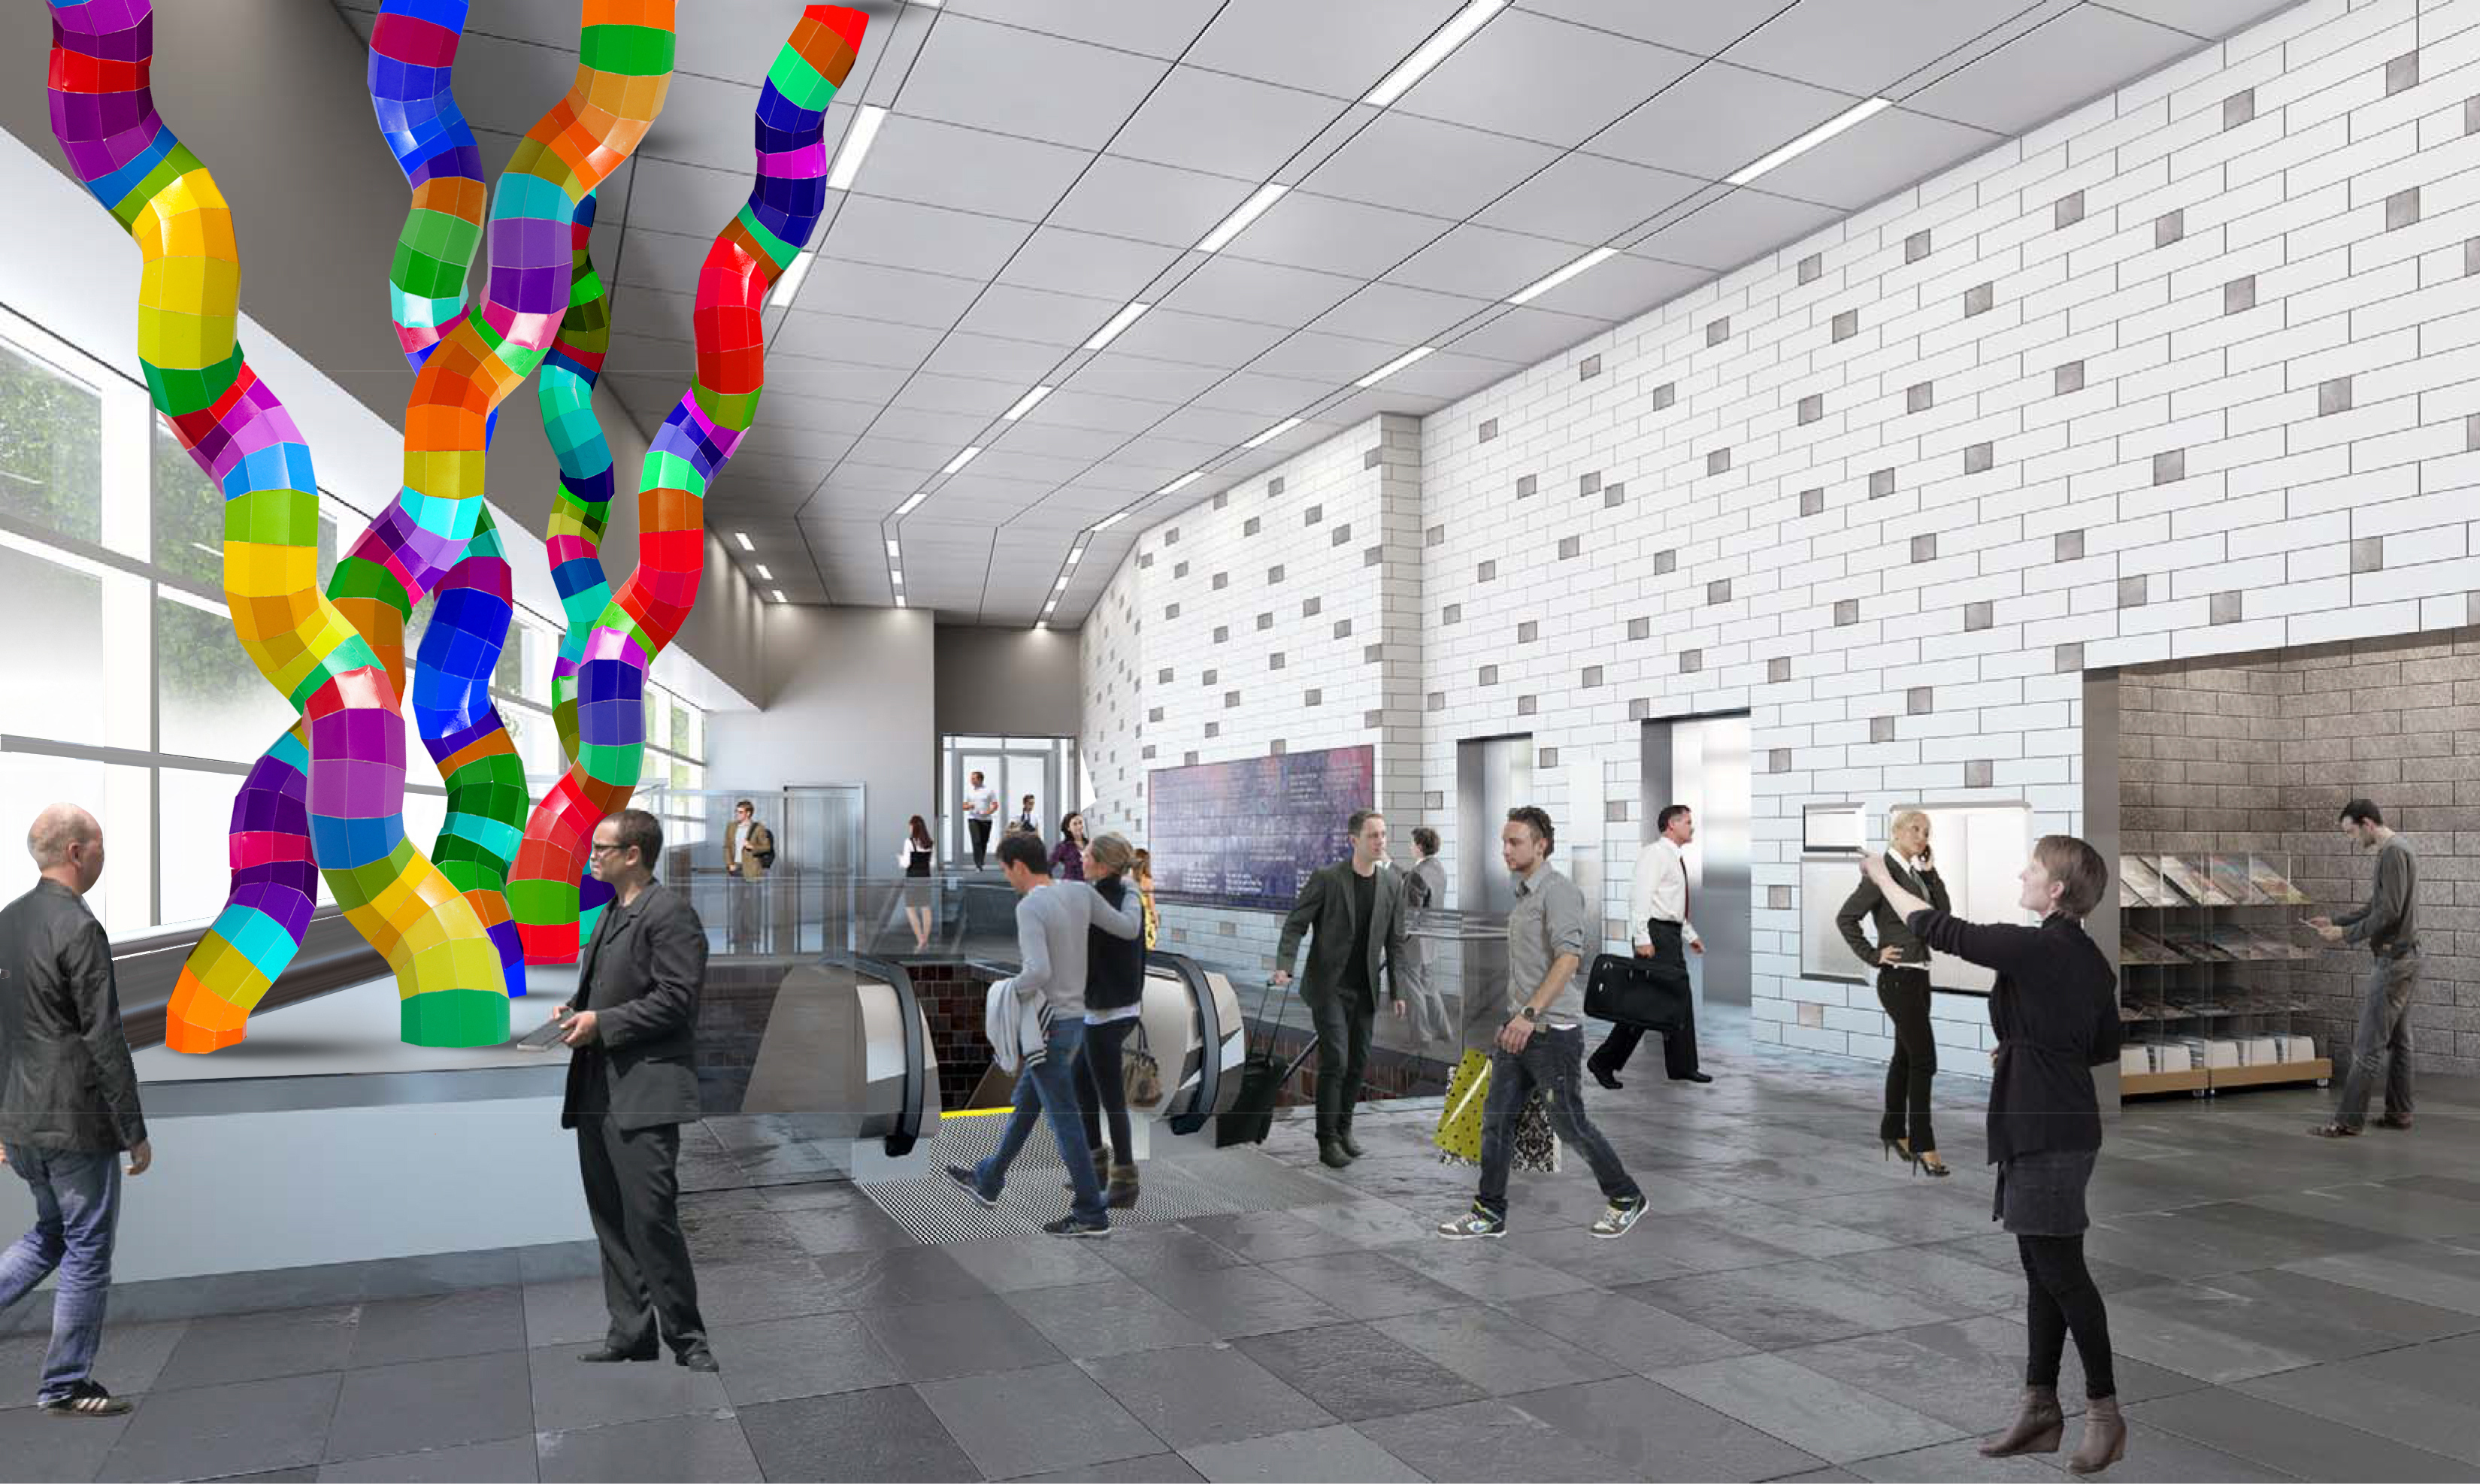 Artistic rendering of public art 'Gut Flora' to be installed in the Allen Medical Campus Metro Station. (photo courtesy of Shasti O'Leary Soudant)